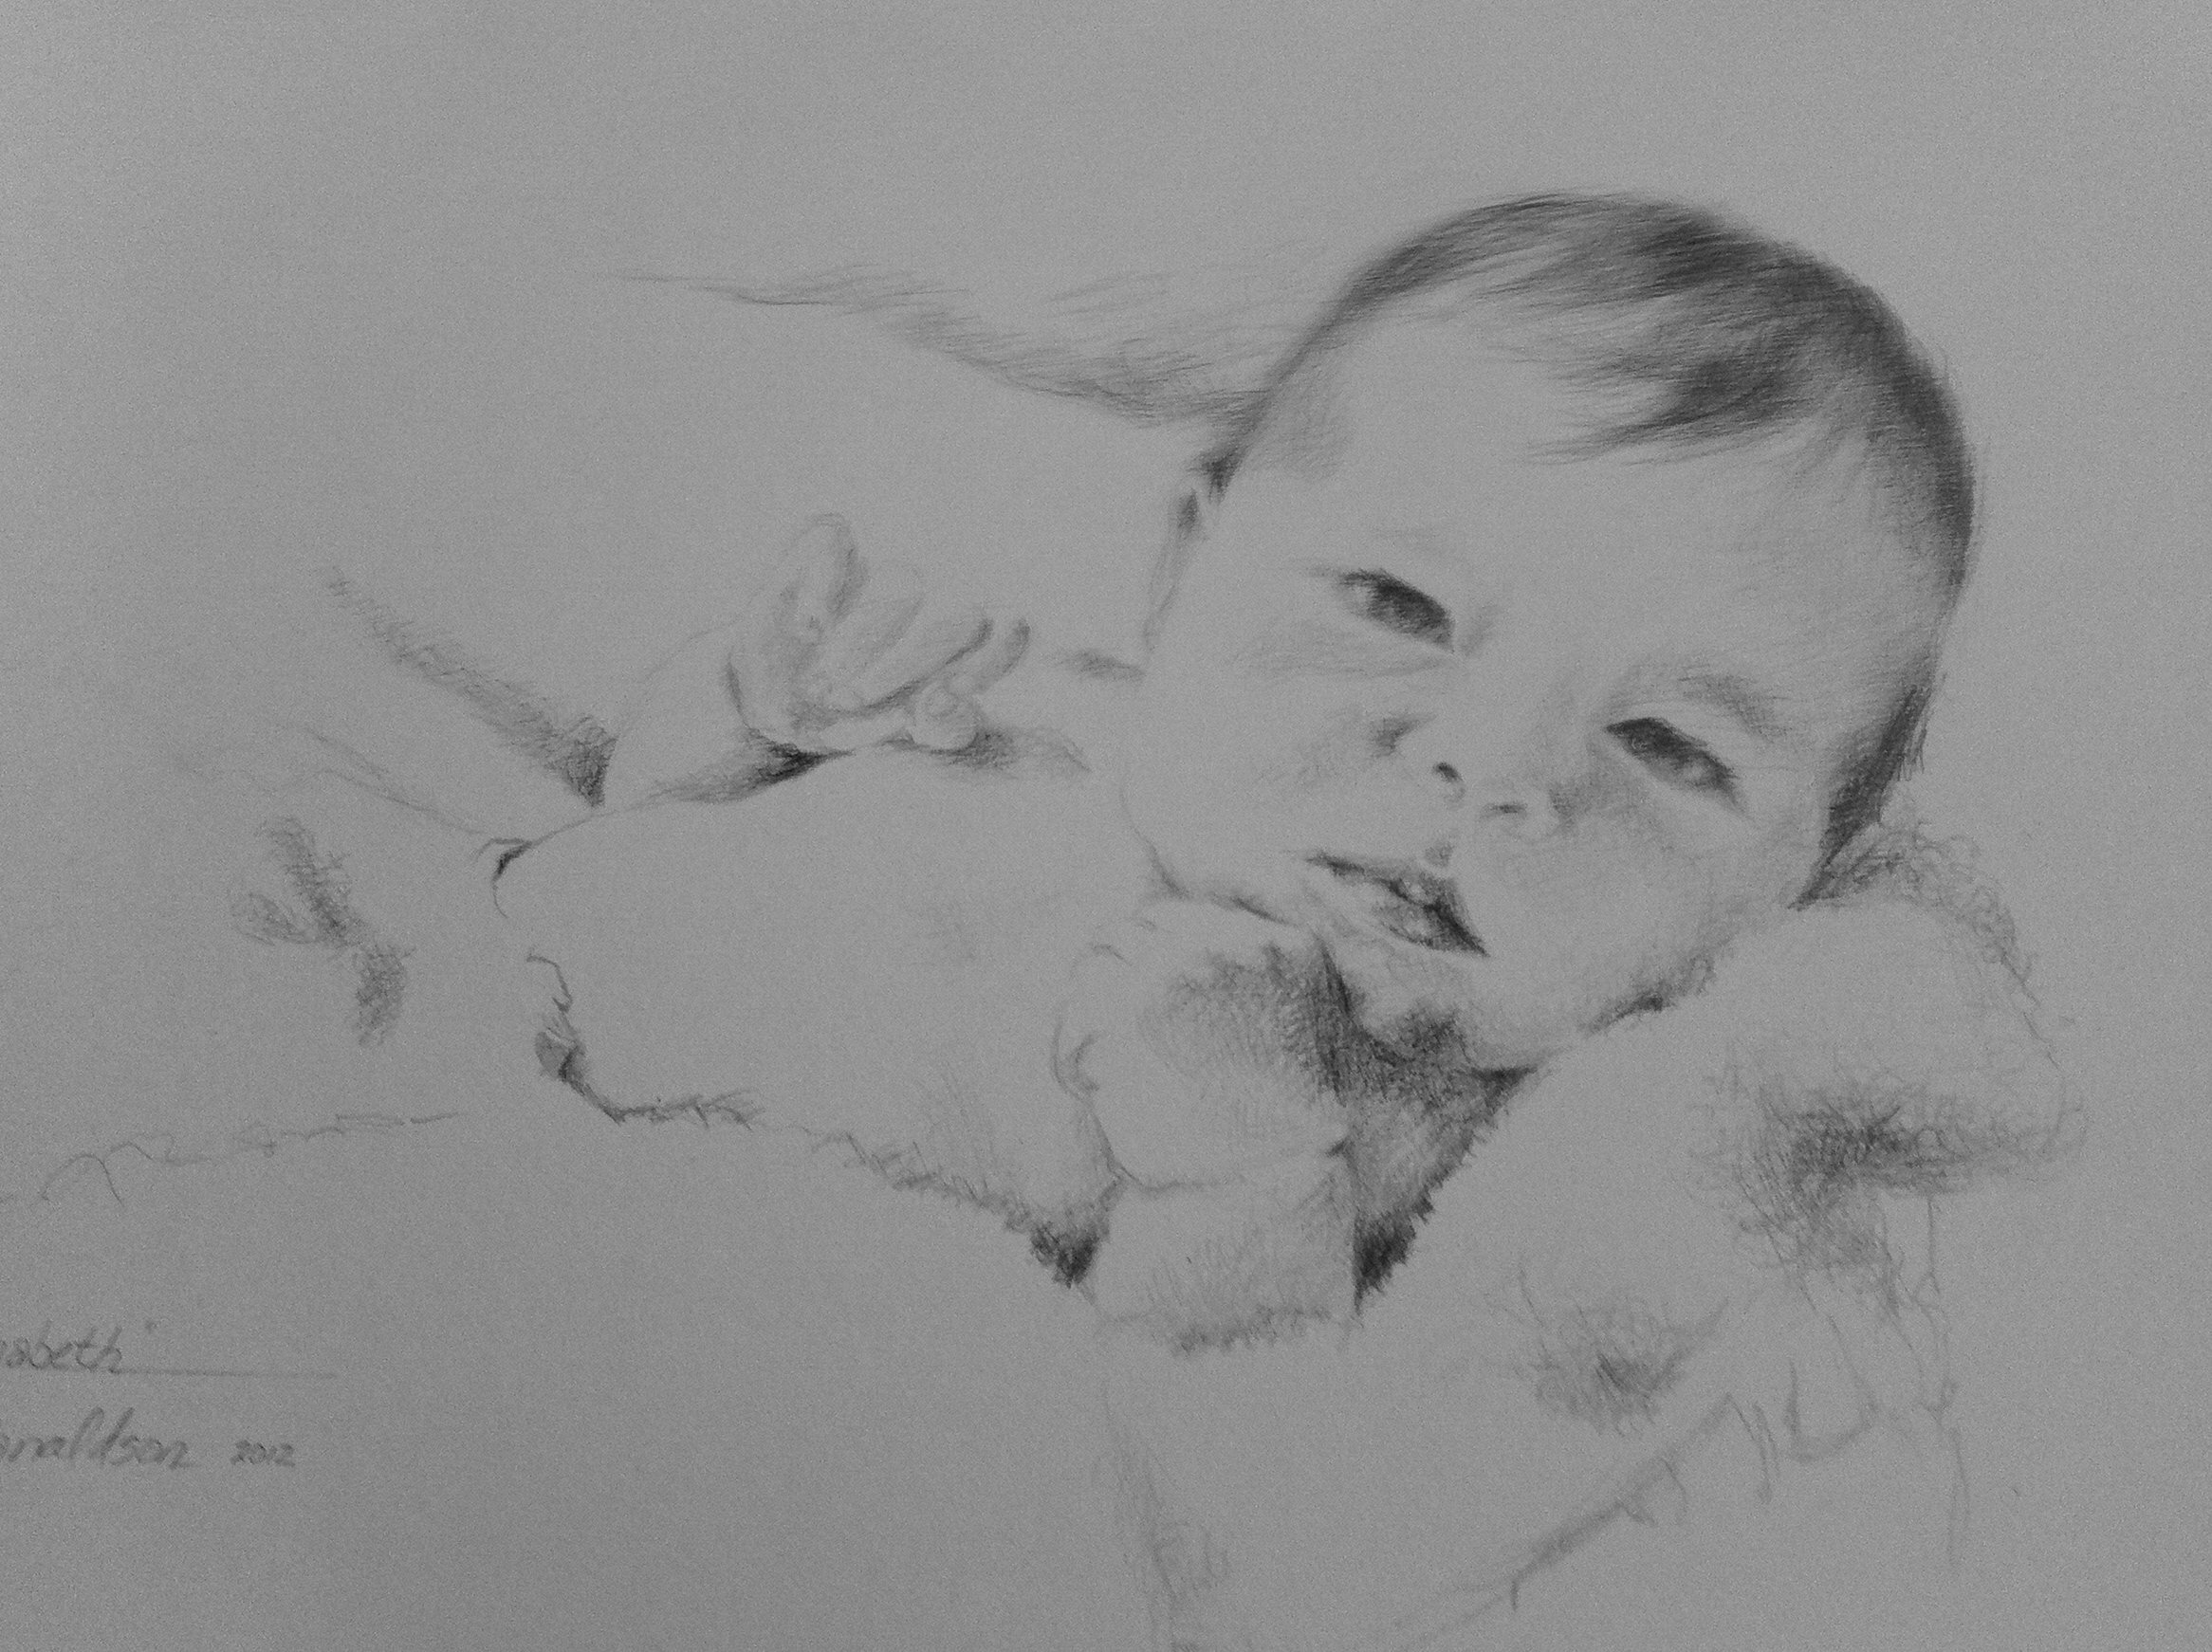 Baby Portraits, graphite pencil